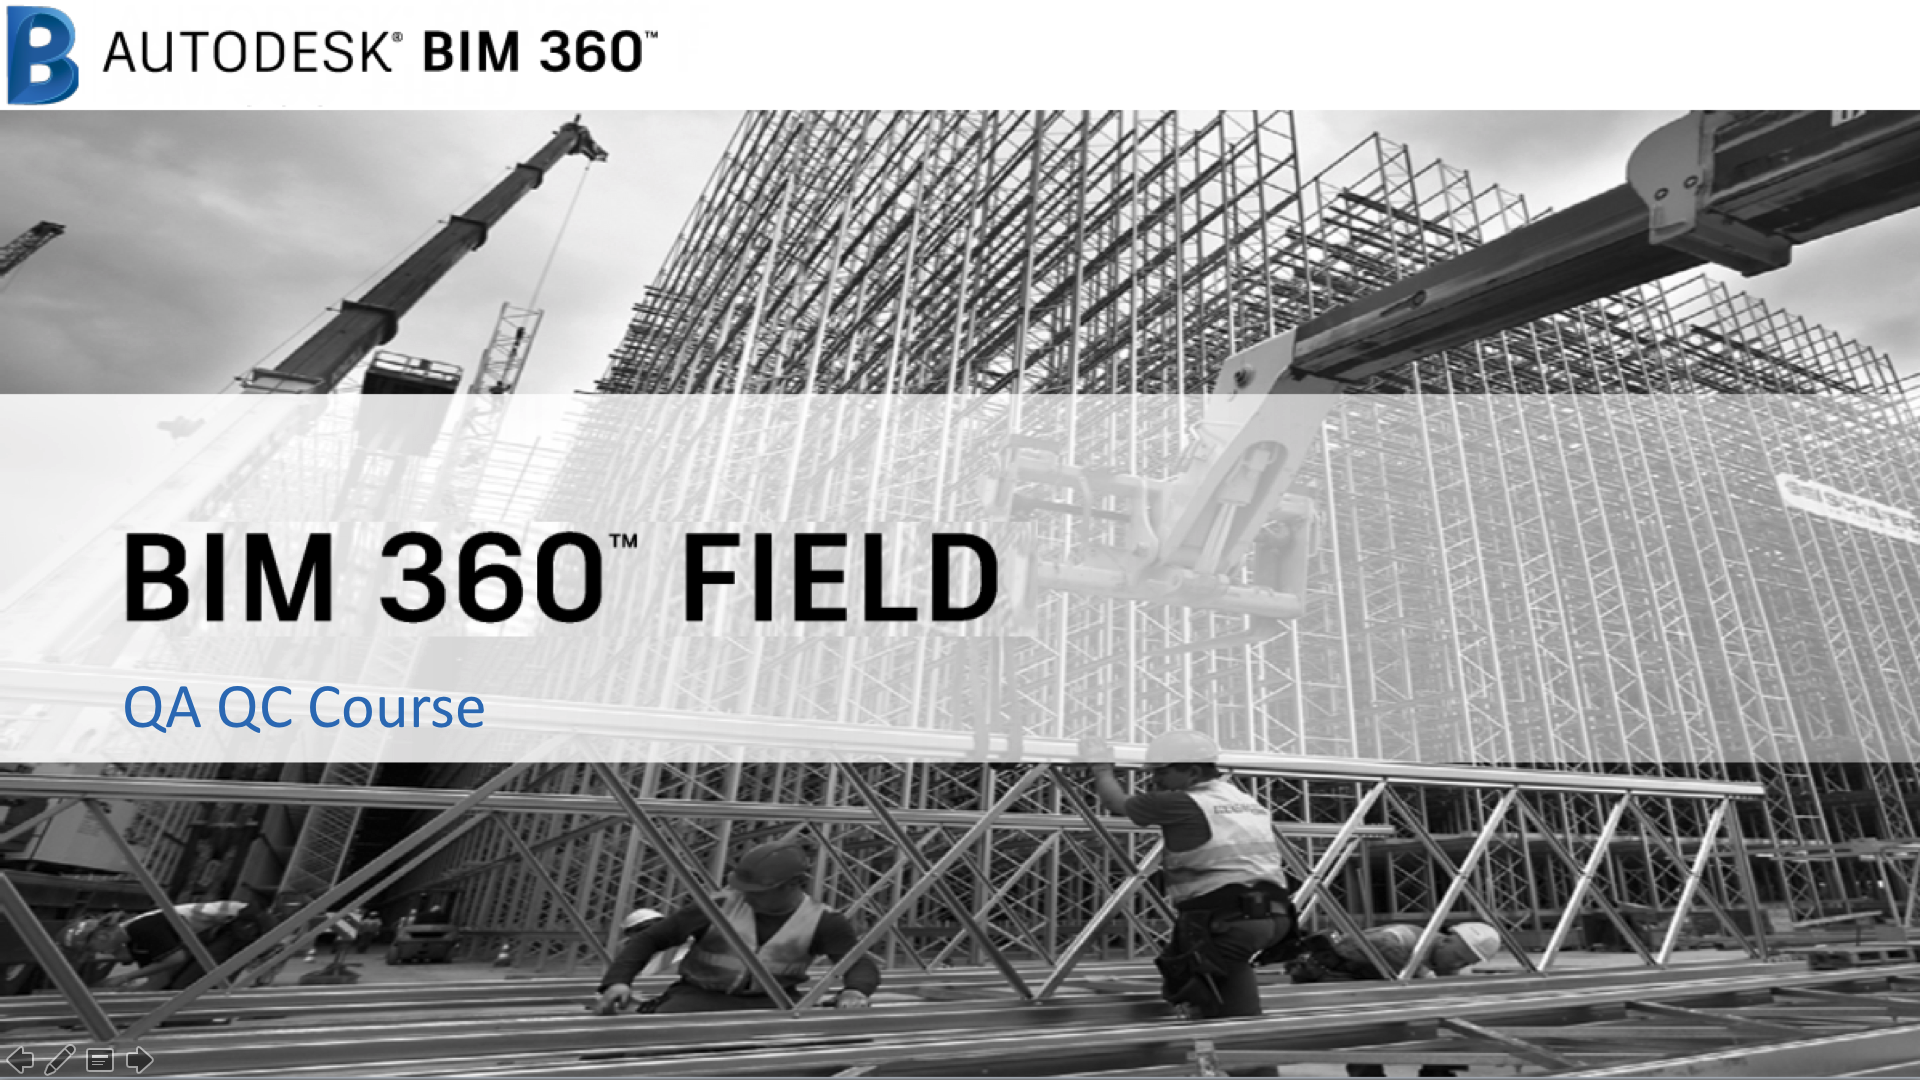 BIM 360 Field: QA/QC